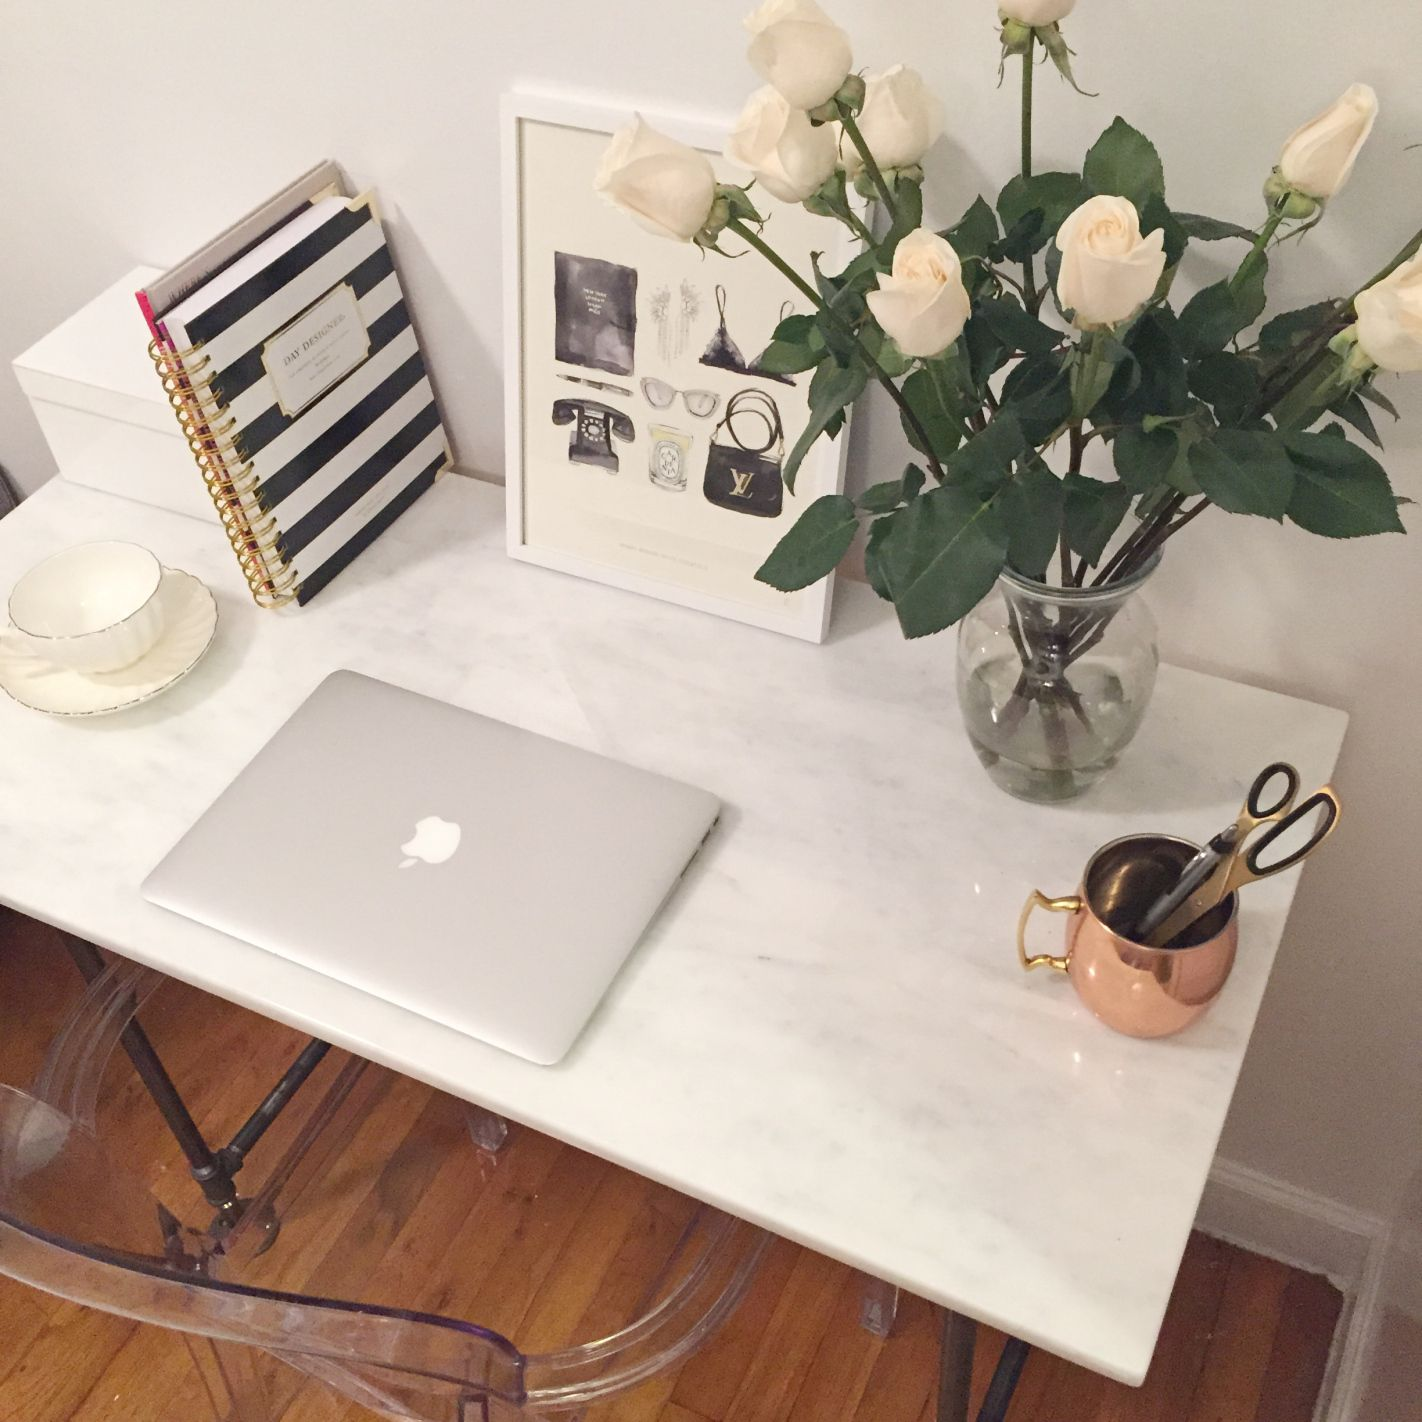 How To Feng Shui Small Spaces: 7 Tips That Transformed My